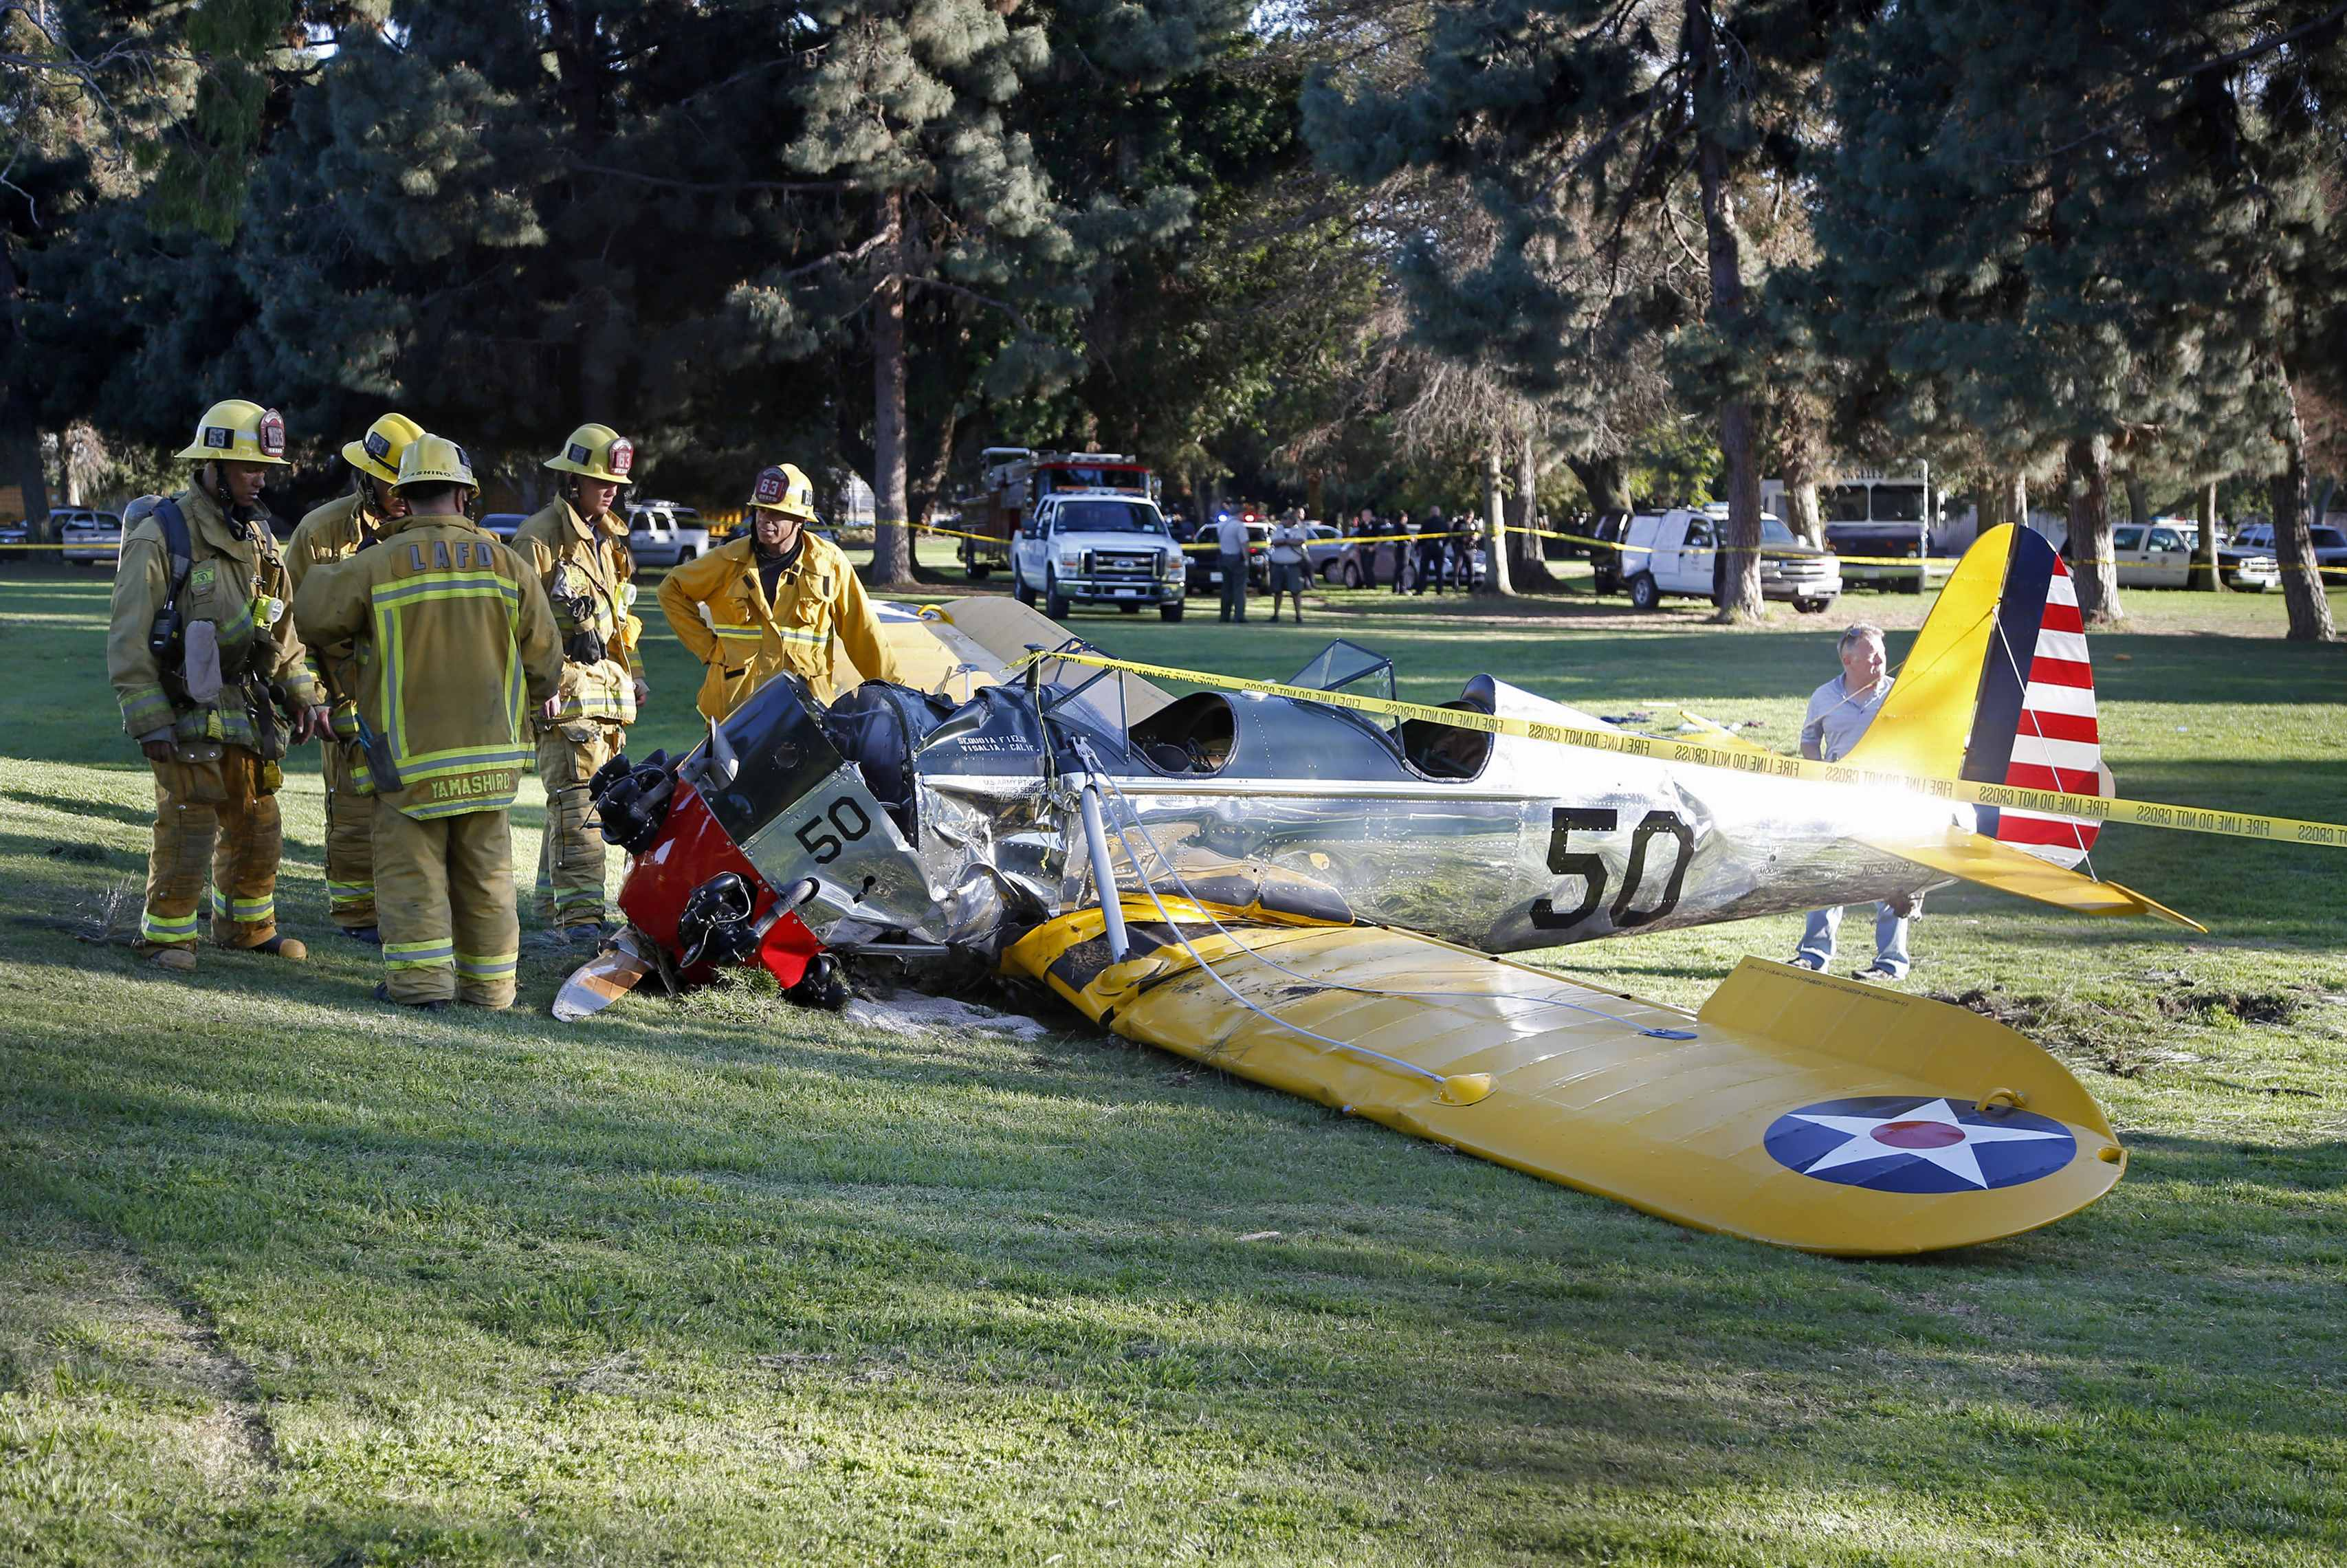 Actor Harrison Ford injured in California plane crash